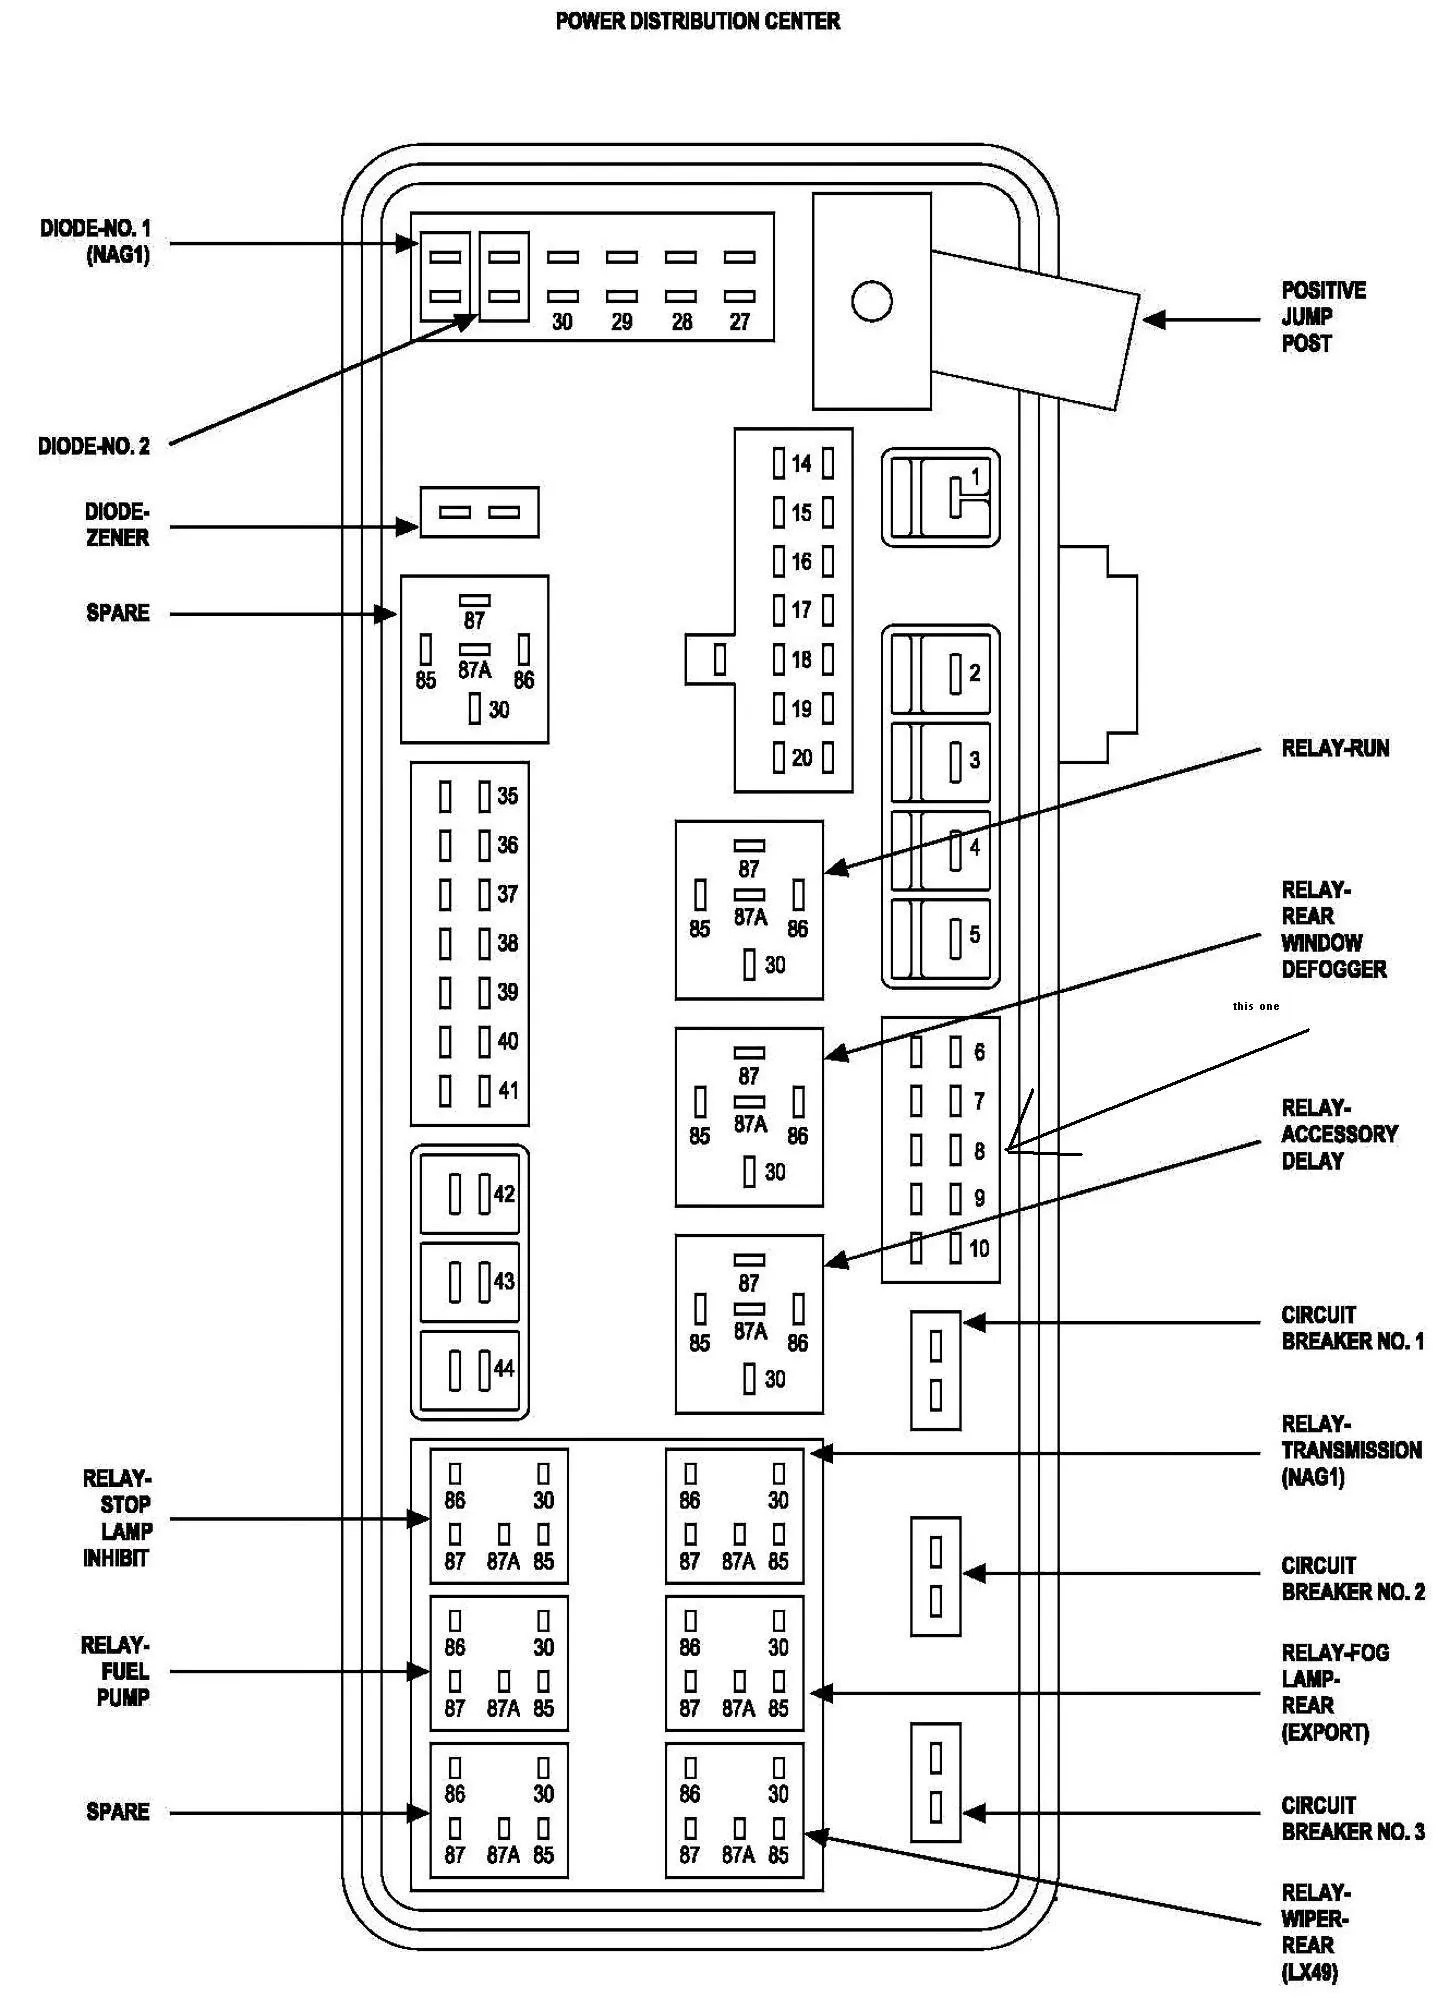 hight resolution of 2001 dodge ram 1500 fuse box diagram wiring diagram portal 2006 dodge ram 2500 fuse panel diagram 2001 dodge ram 1500 fuse panel diagram